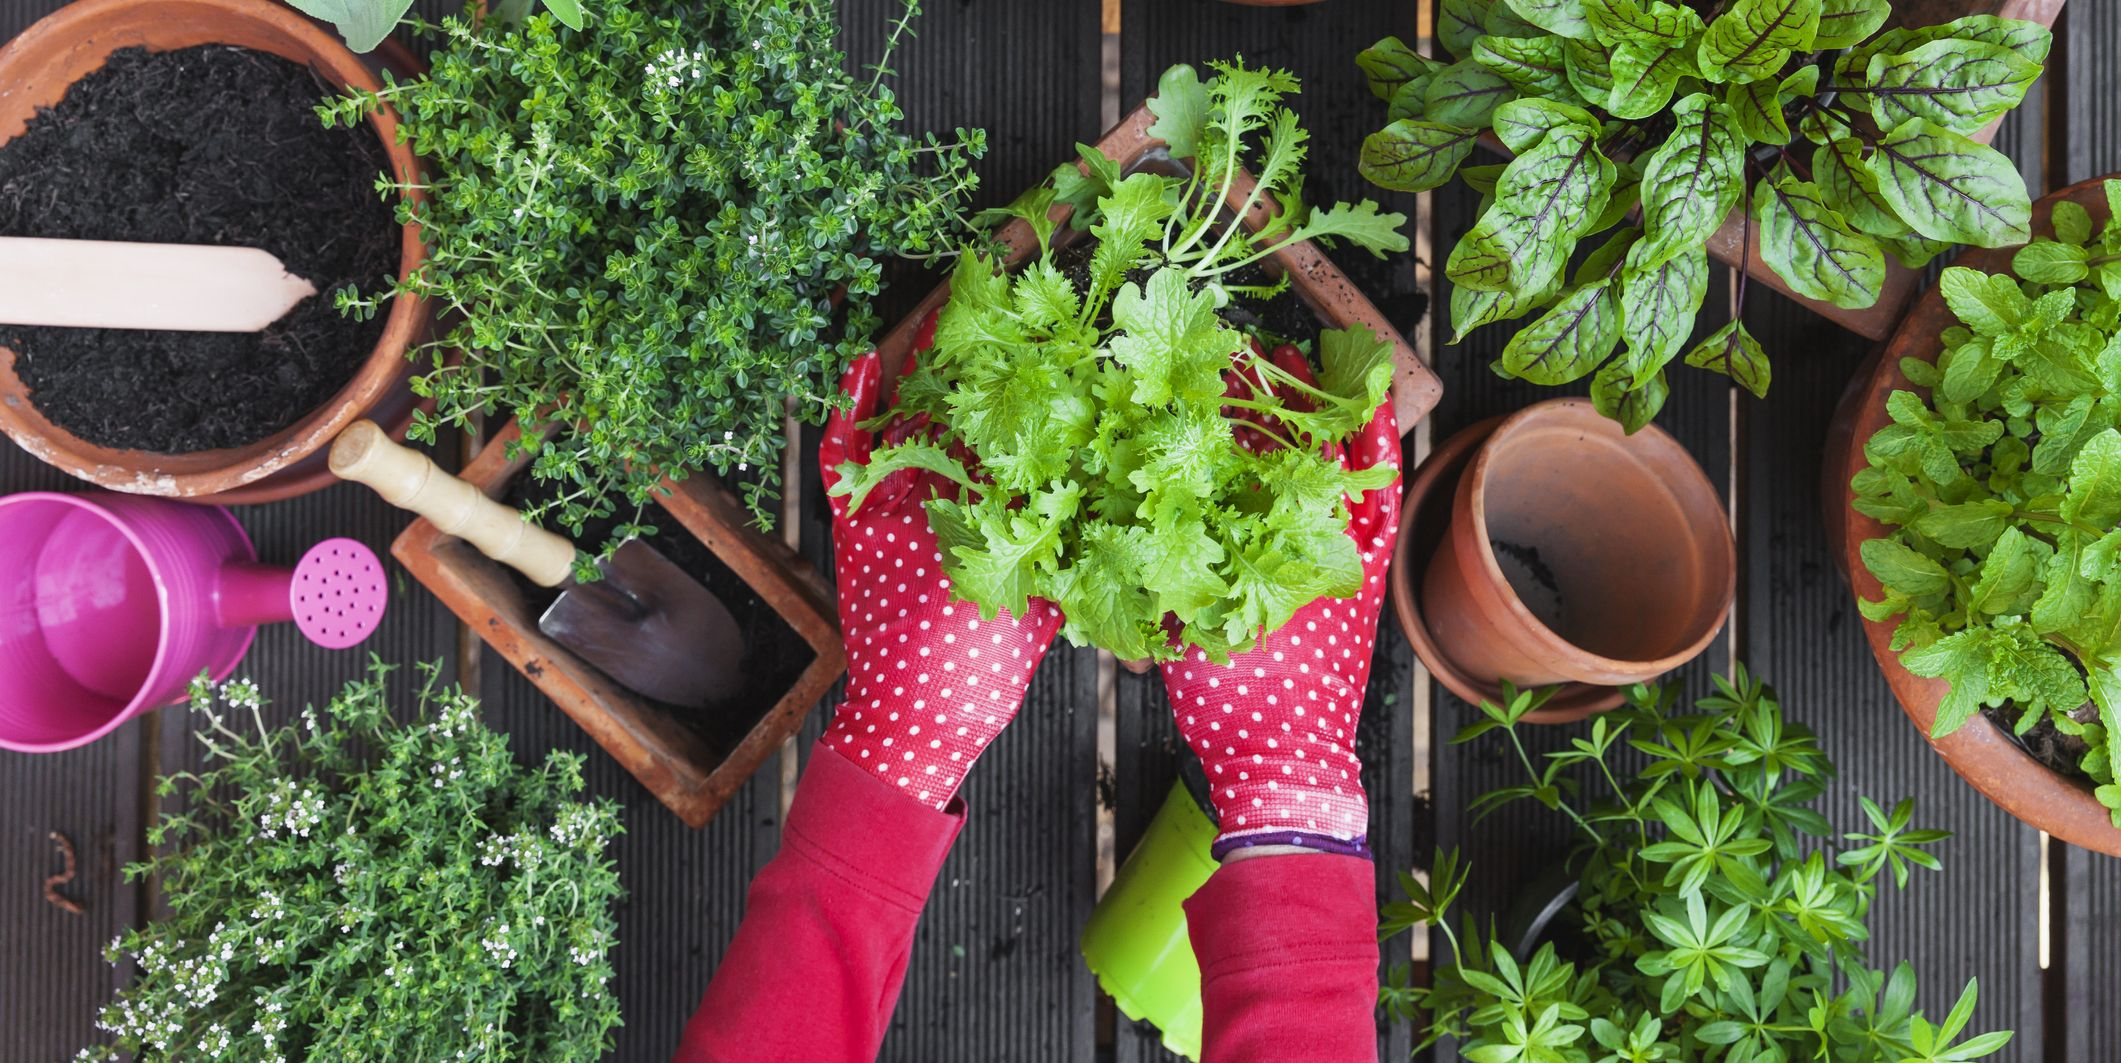 The 10 Best Gardening Gloves for Every Chore